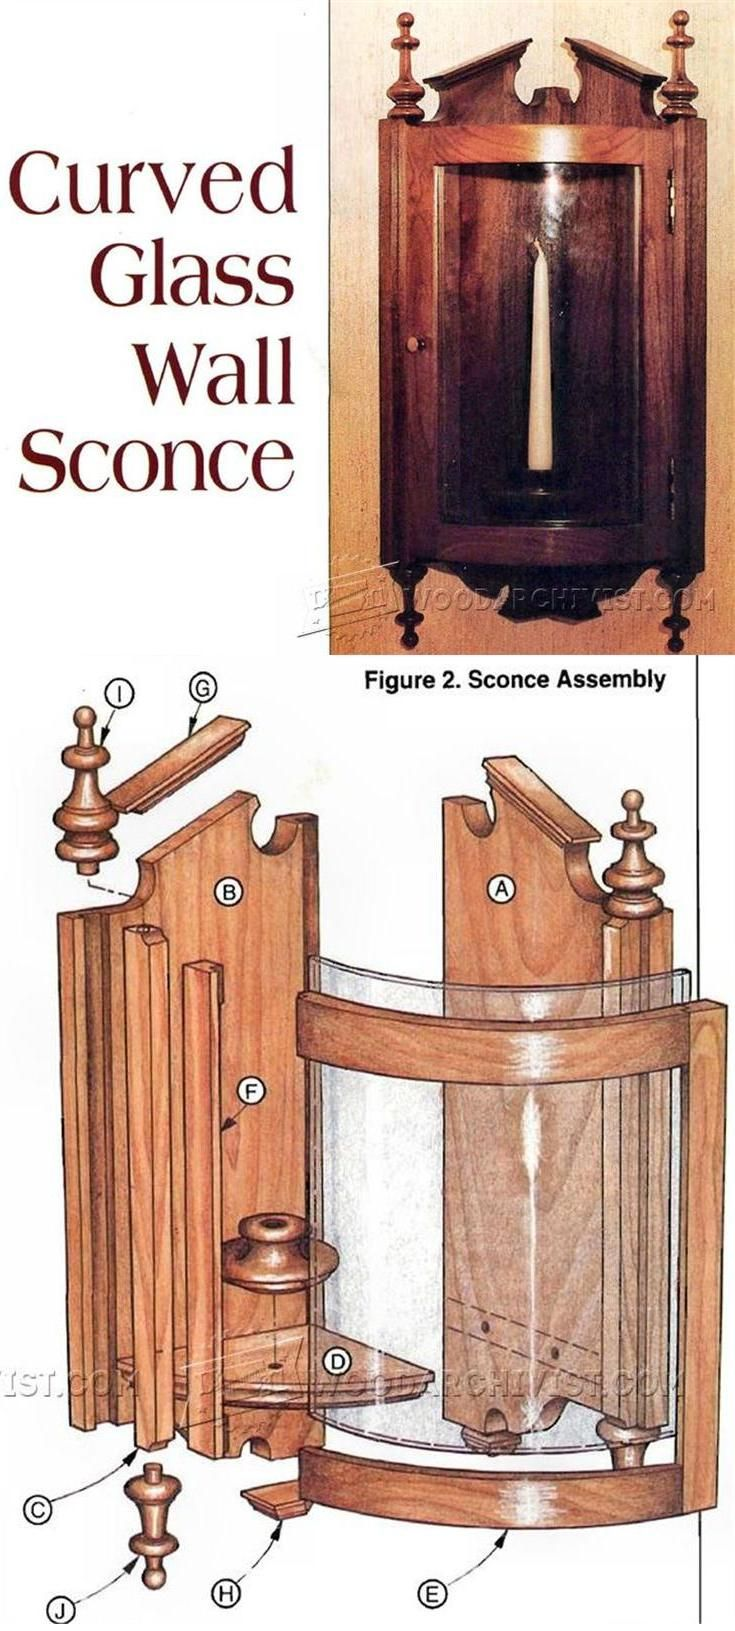 Curved Glass Wall Sconce Plans - Woodworking Plans and Projects | WoodArchivist.com